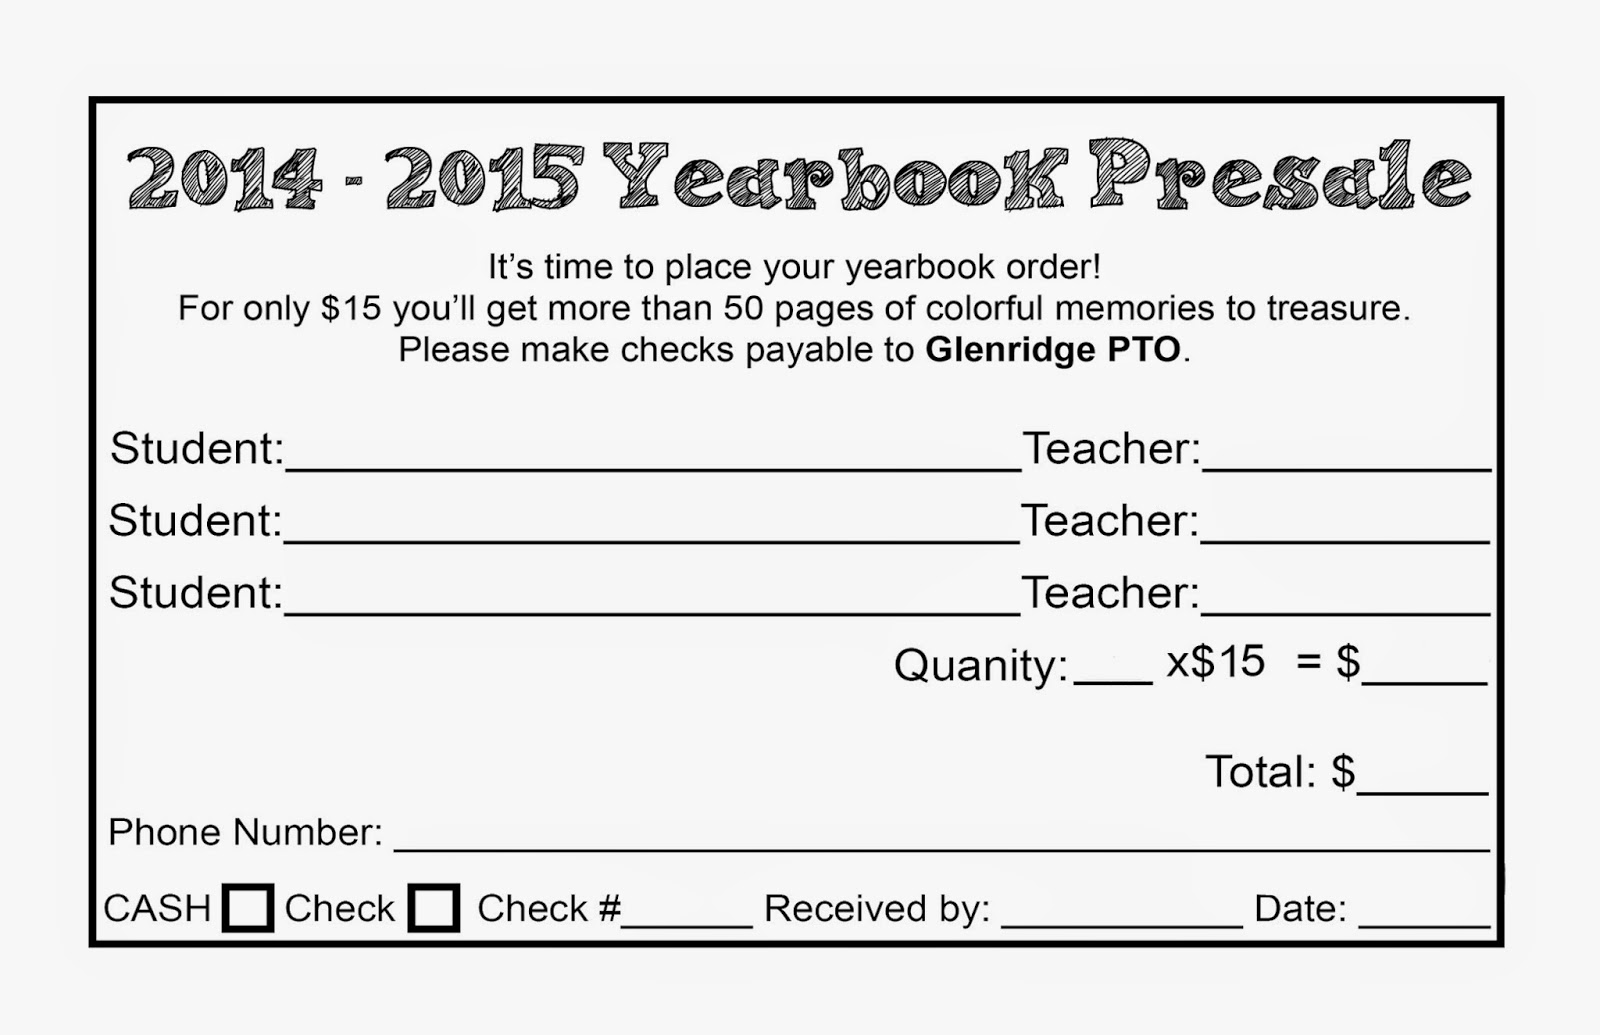 Glenridge PTO: April 2015